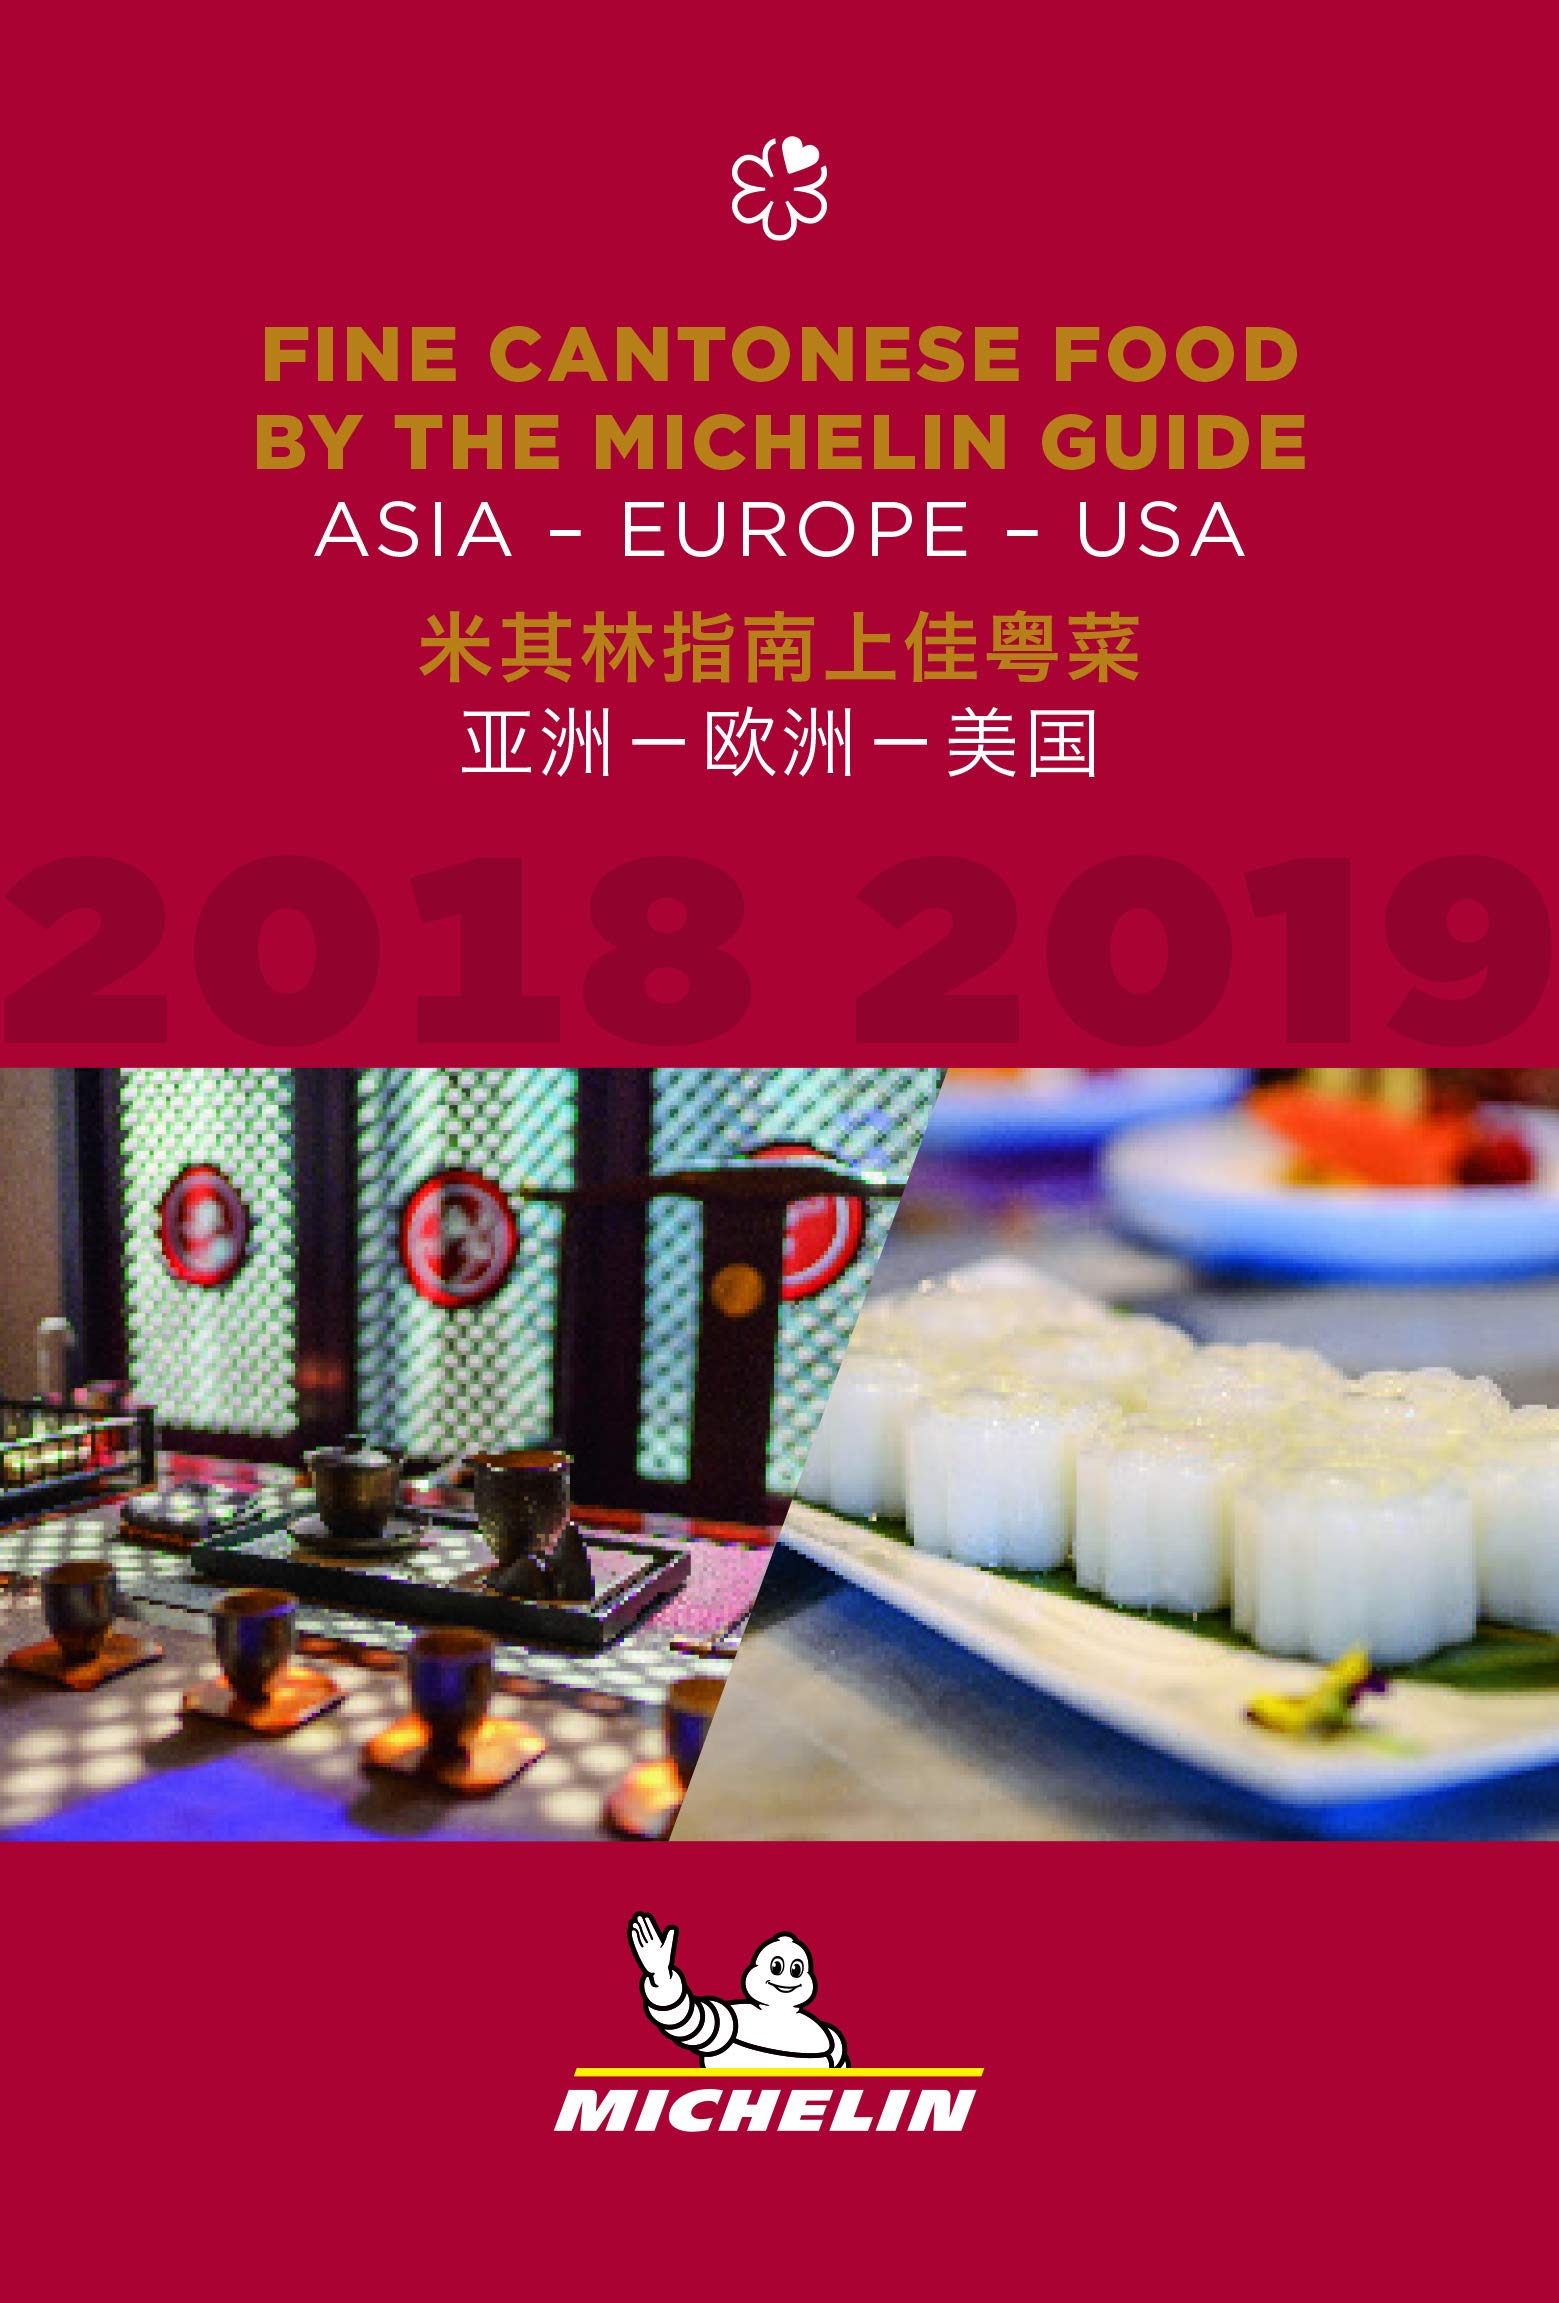 Fine Cantonese Food 2018-2019: Asia, Europe and USA - The MICHELIN Guide: The Guide MICHELIN Michelin Hotel ...